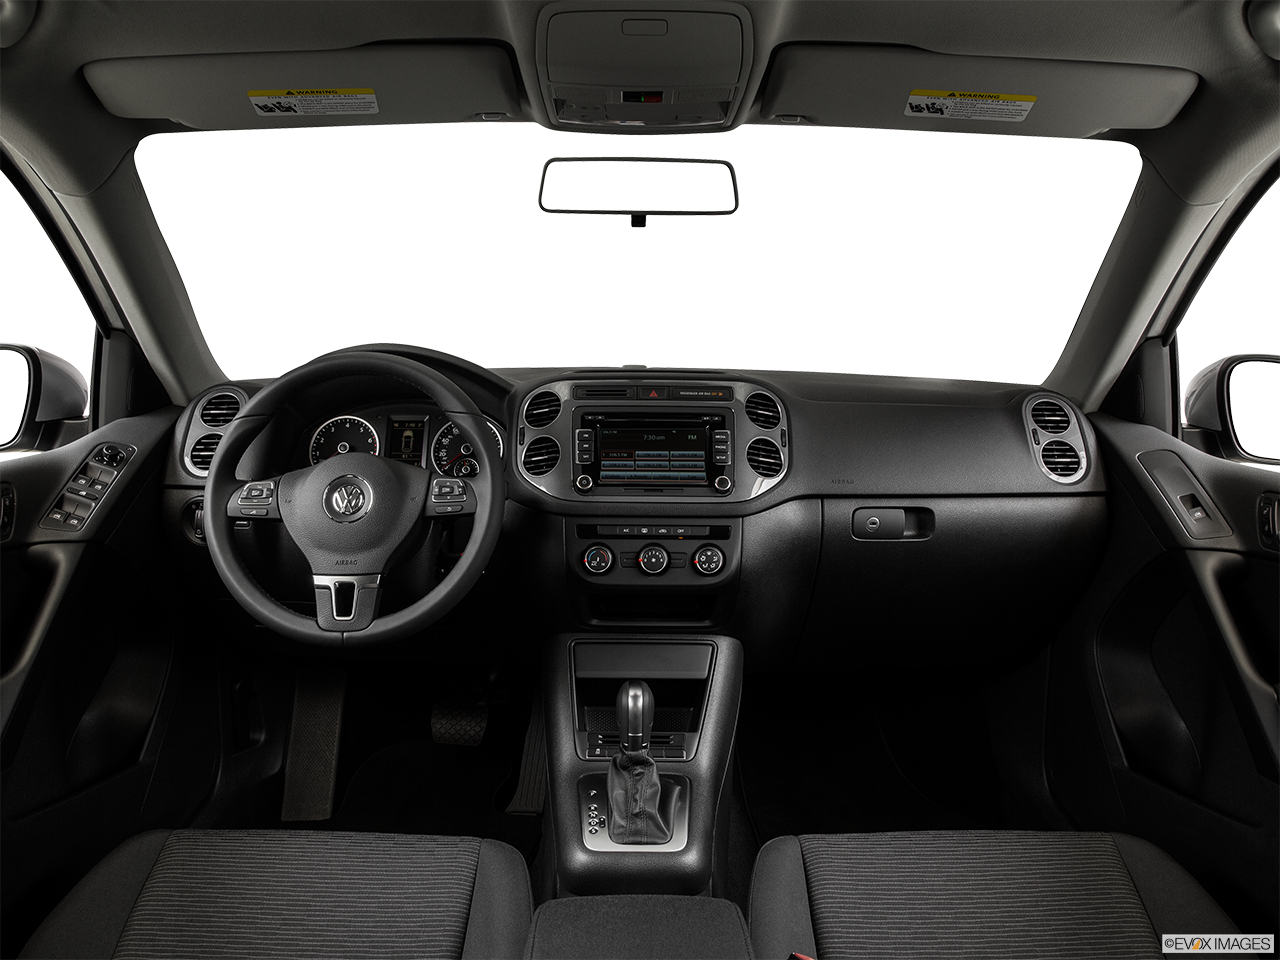 Interior View Of 2015 Volkswagen Tiguan in Franklin